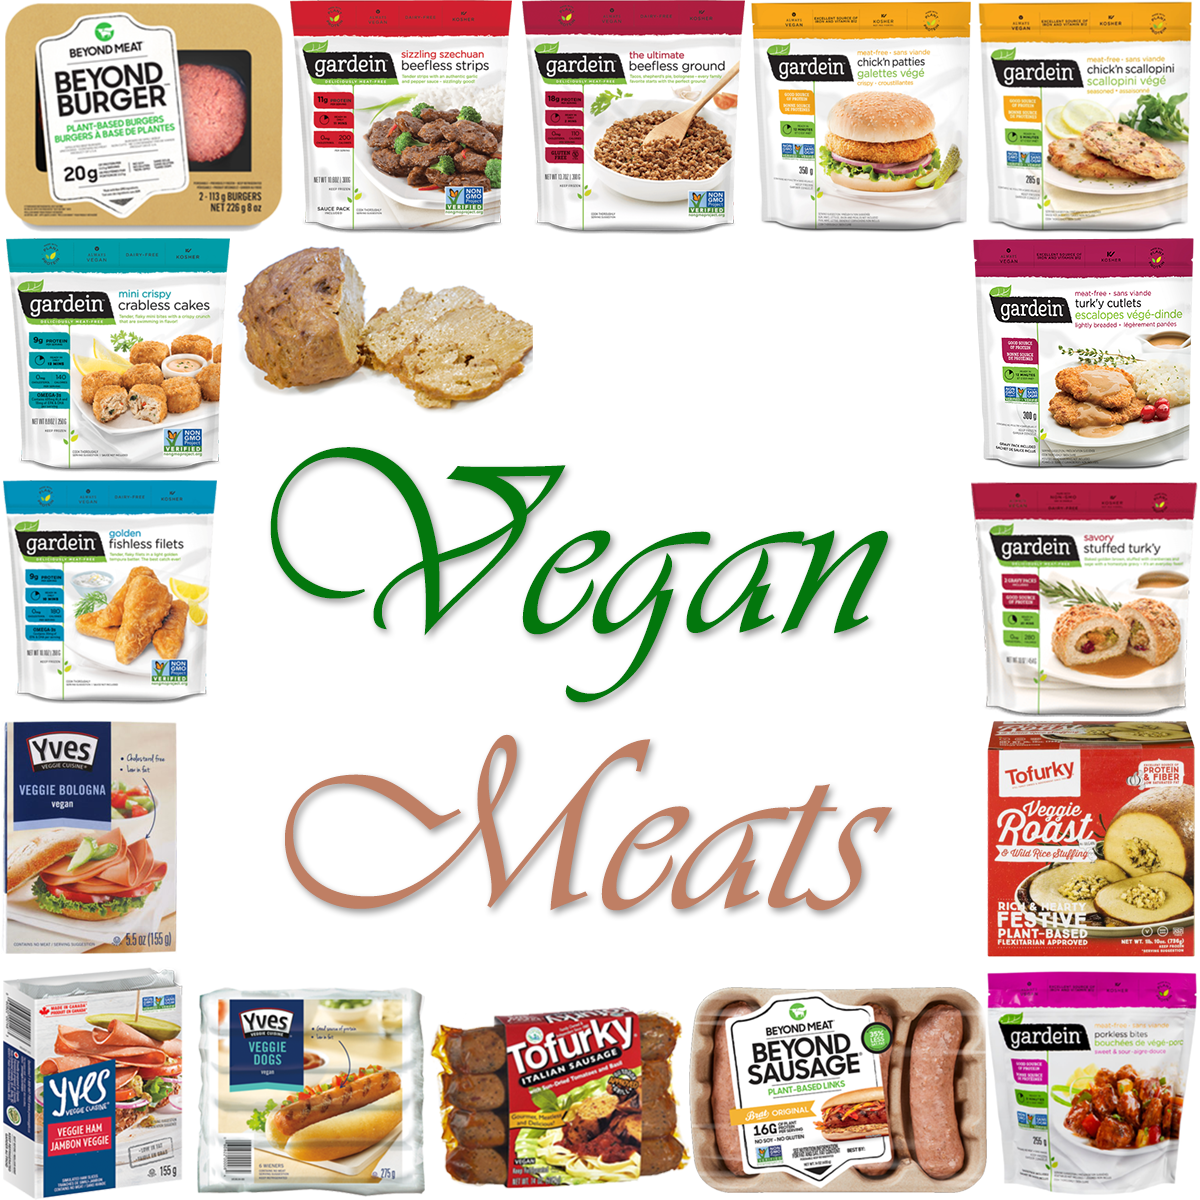 AterImber.com - The Veg Life - Vegan Tips - Vegan Meat Alternatives - vegan meat, meat substitutes, Beyond Meat, Gardein, Tofurky, Yves, vegan food, food blogger, what's wrong with meat, meat is murder, vegan blogger